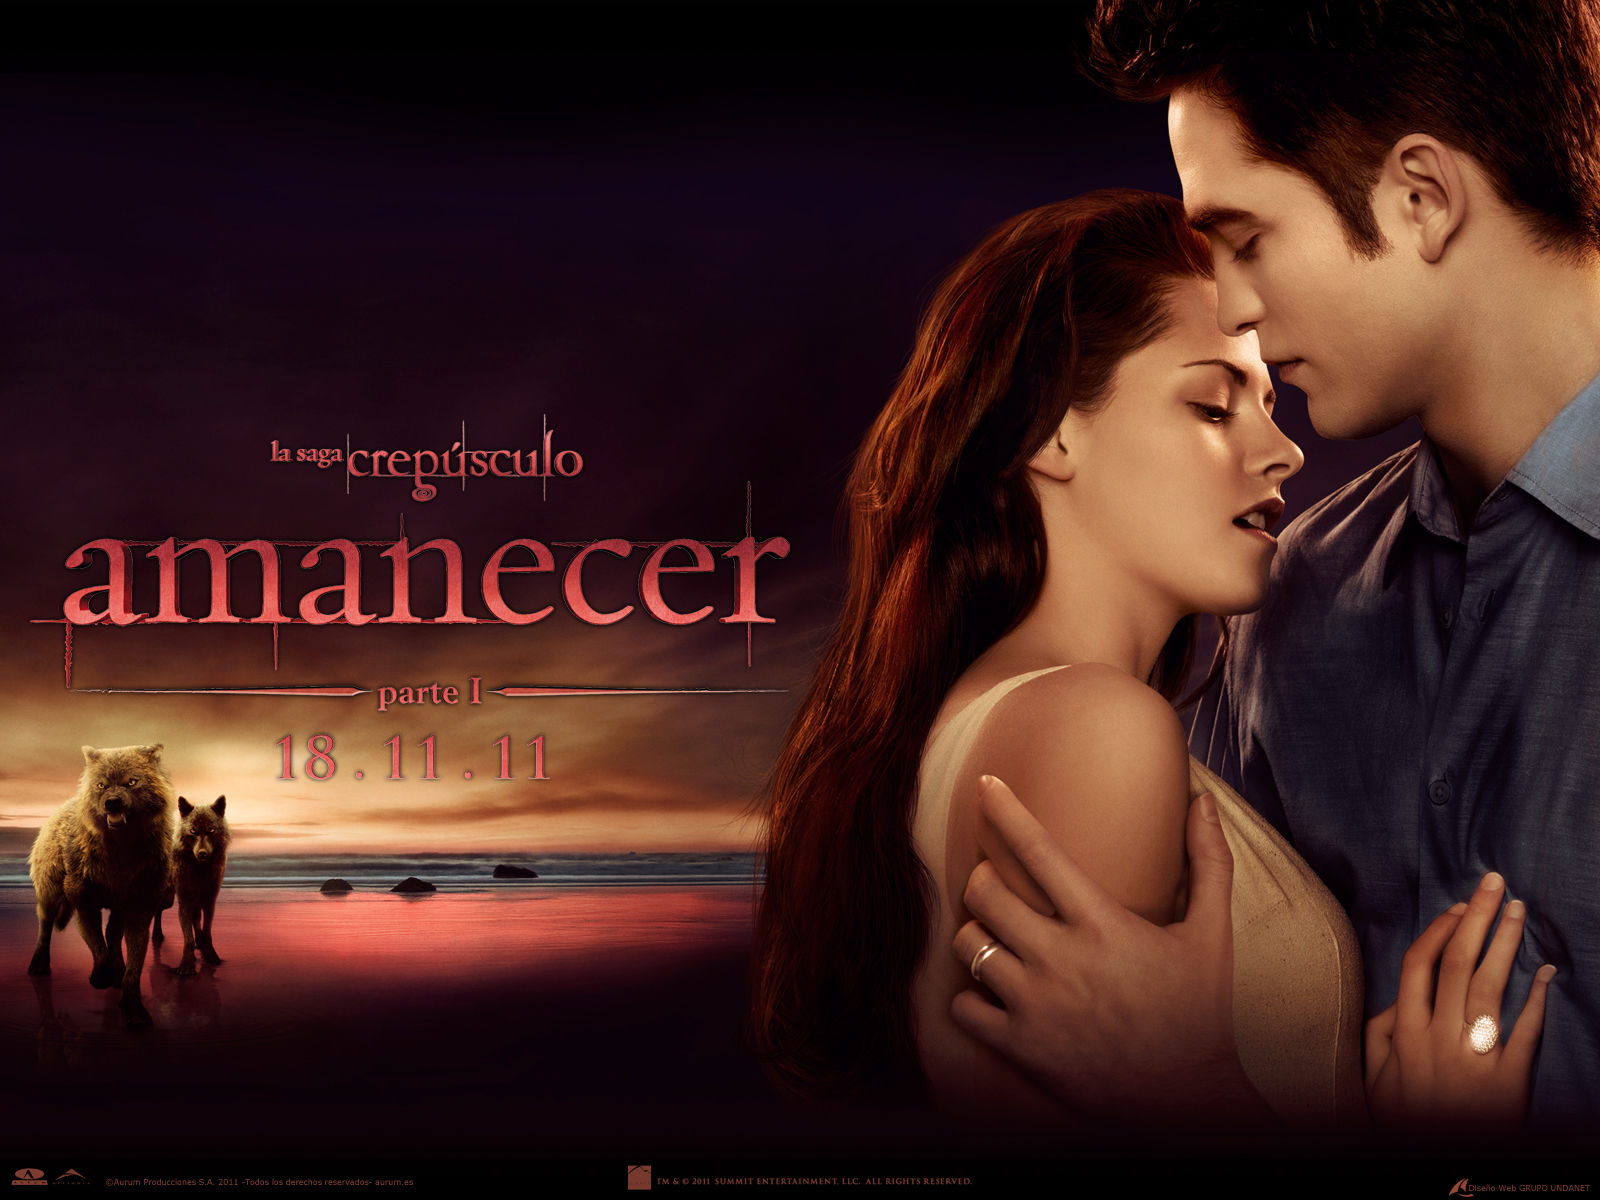 Wallpapers HD de Breaking Dawn – Crepusculo Amanecer